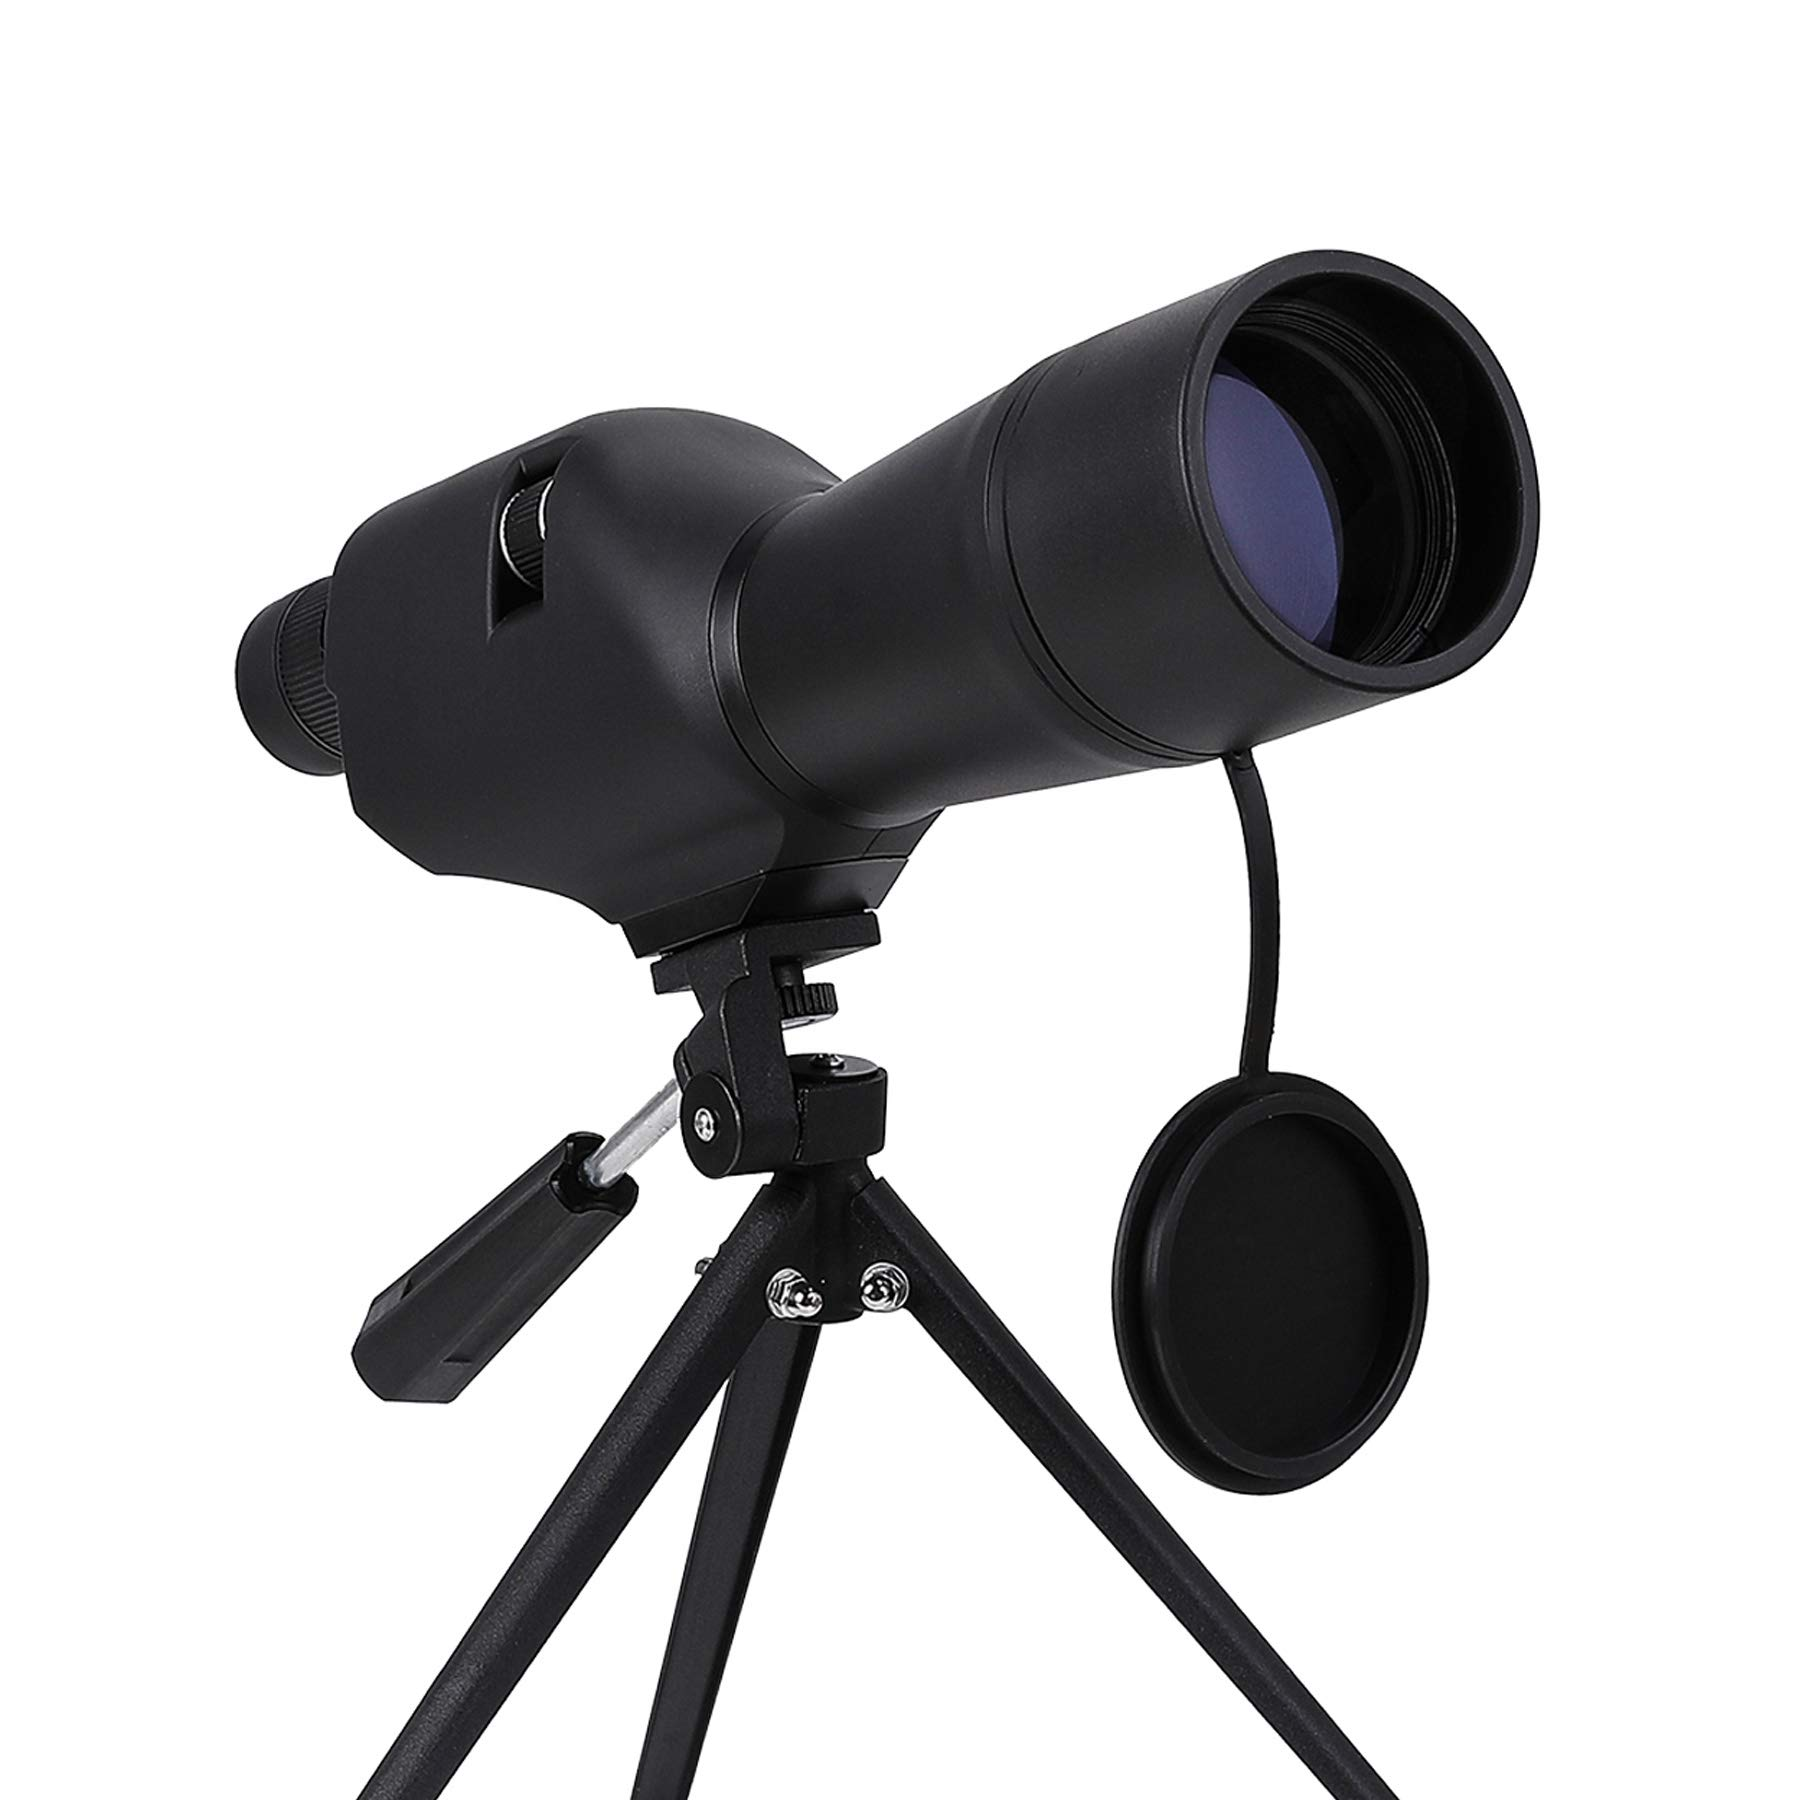 Pinty 20-60x60 Straight Spotting Scope with Tripod, Optics Zoom 36-19m/1000m for Target Shooting Bird Watching Hunting,Waterproof by Pinty